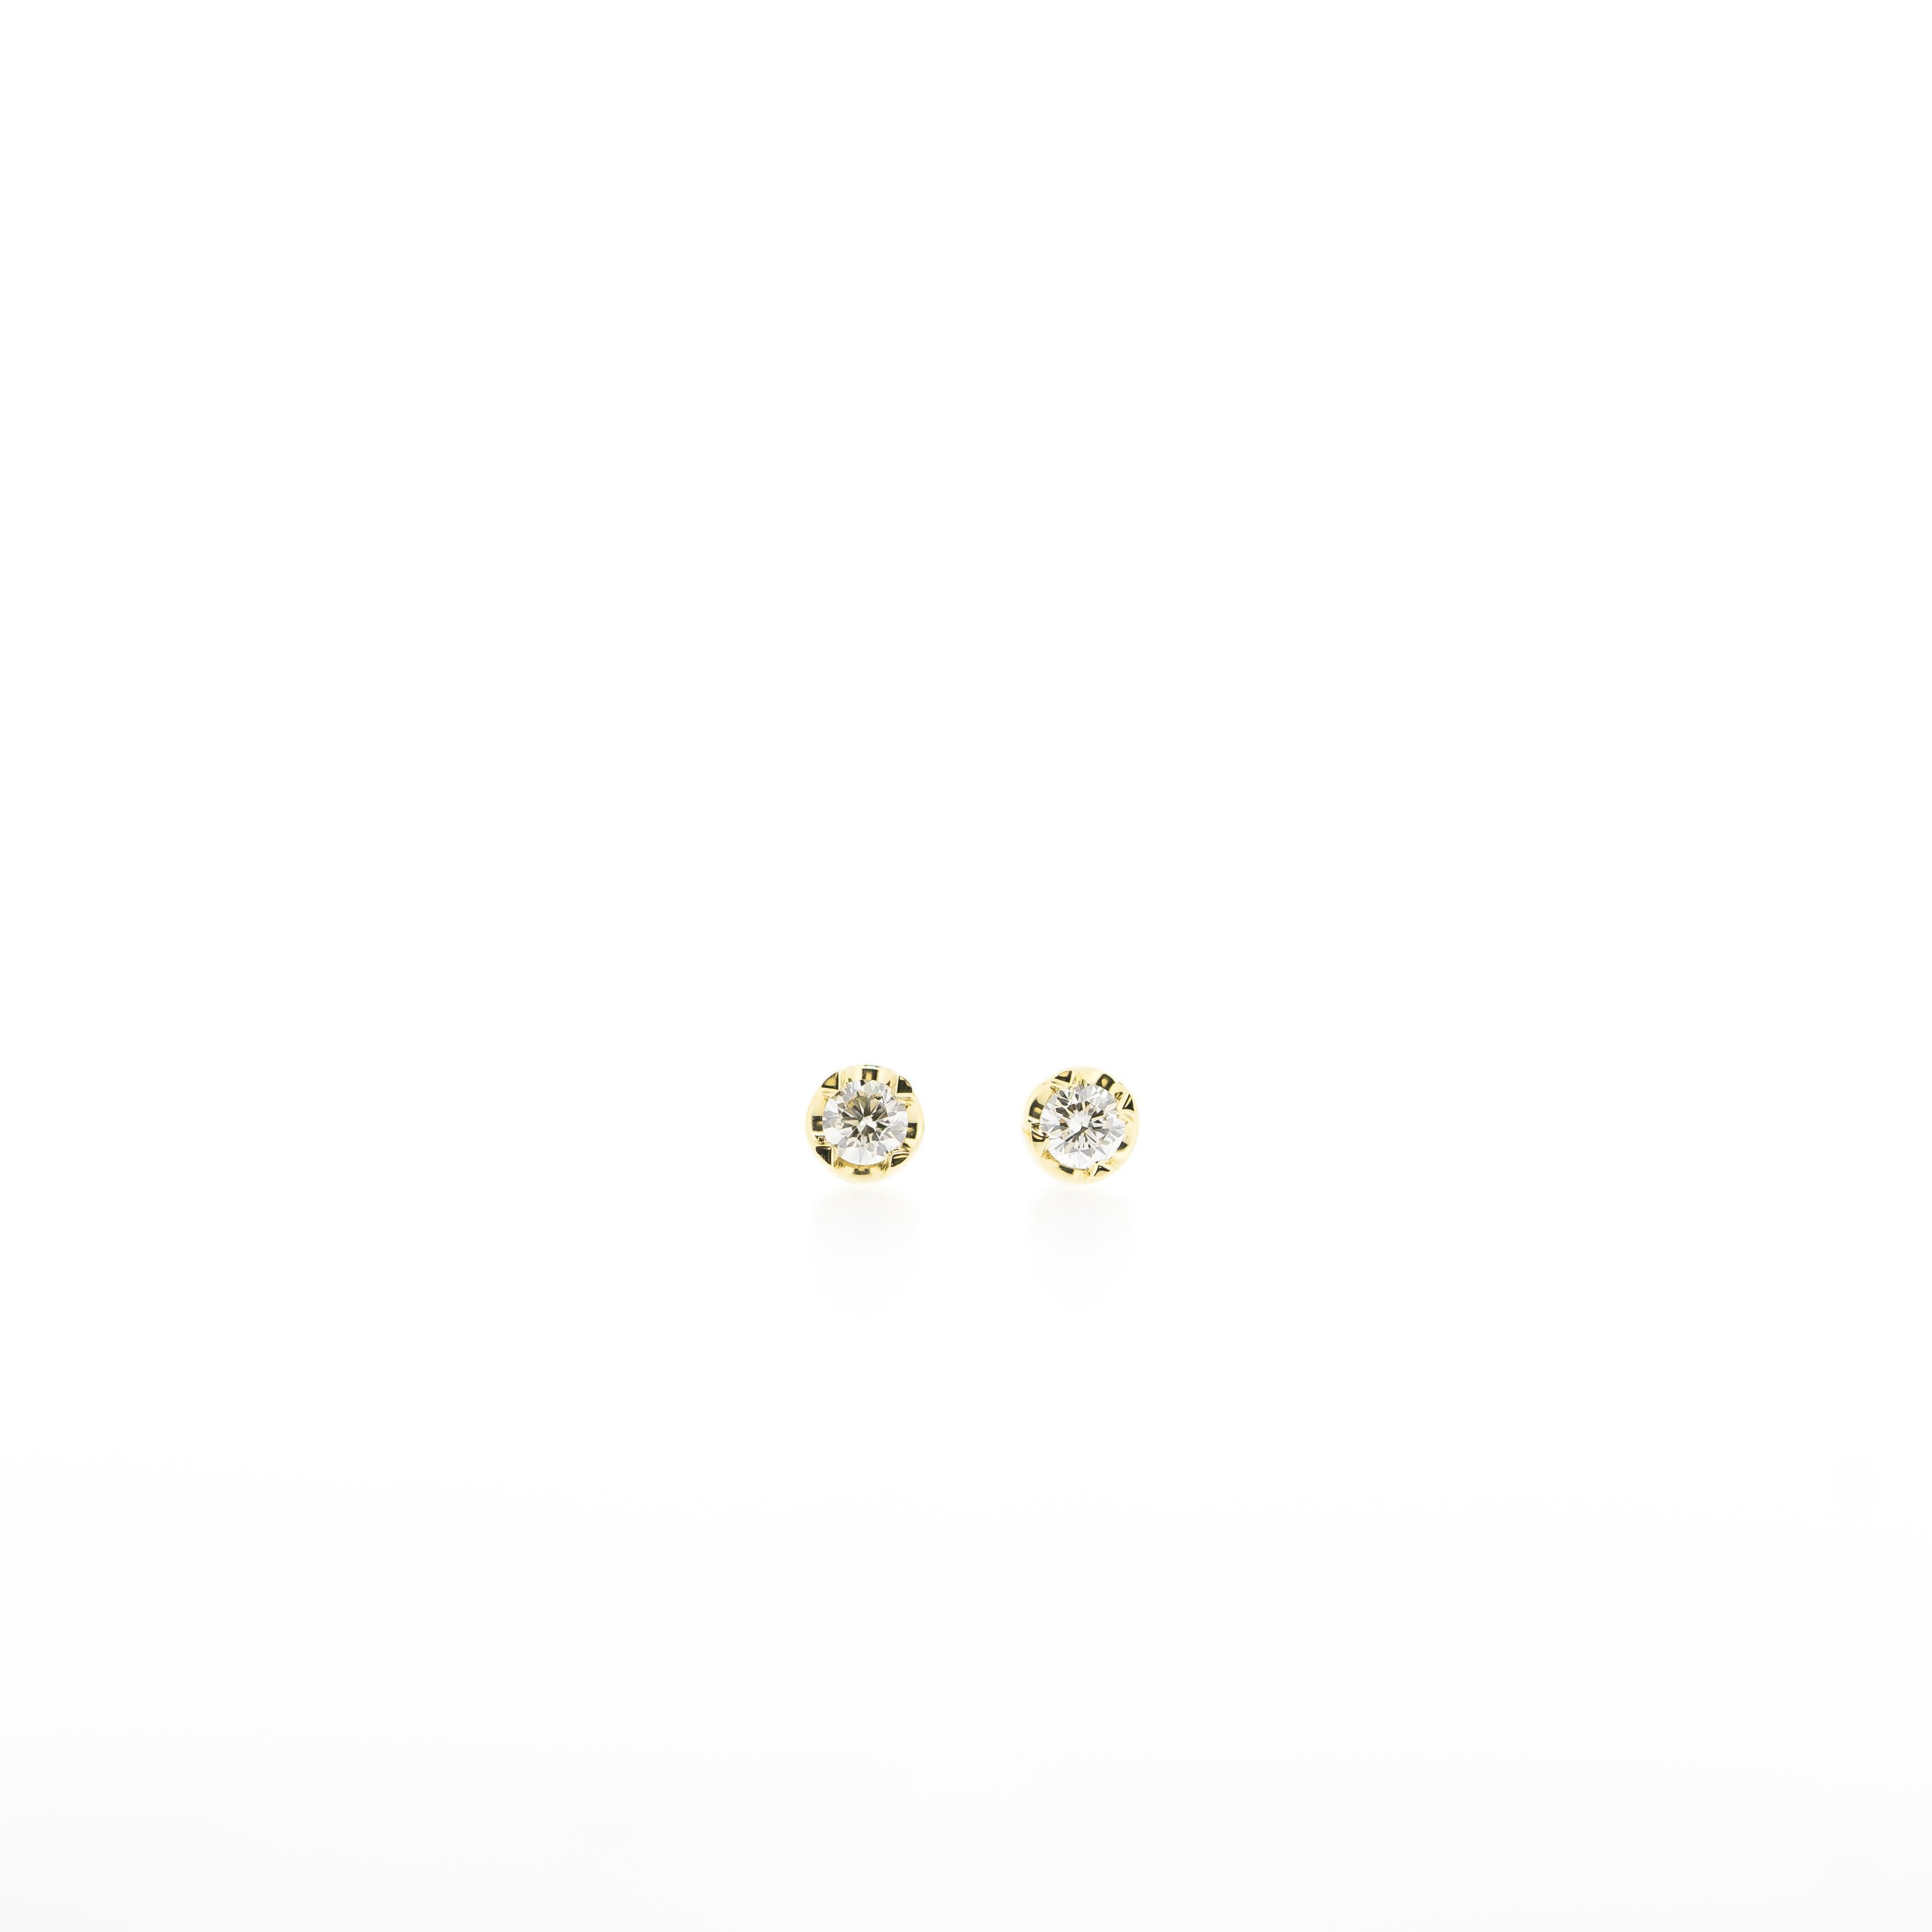 online eco jewels graff earrings stud jewellery christie diamond christies s